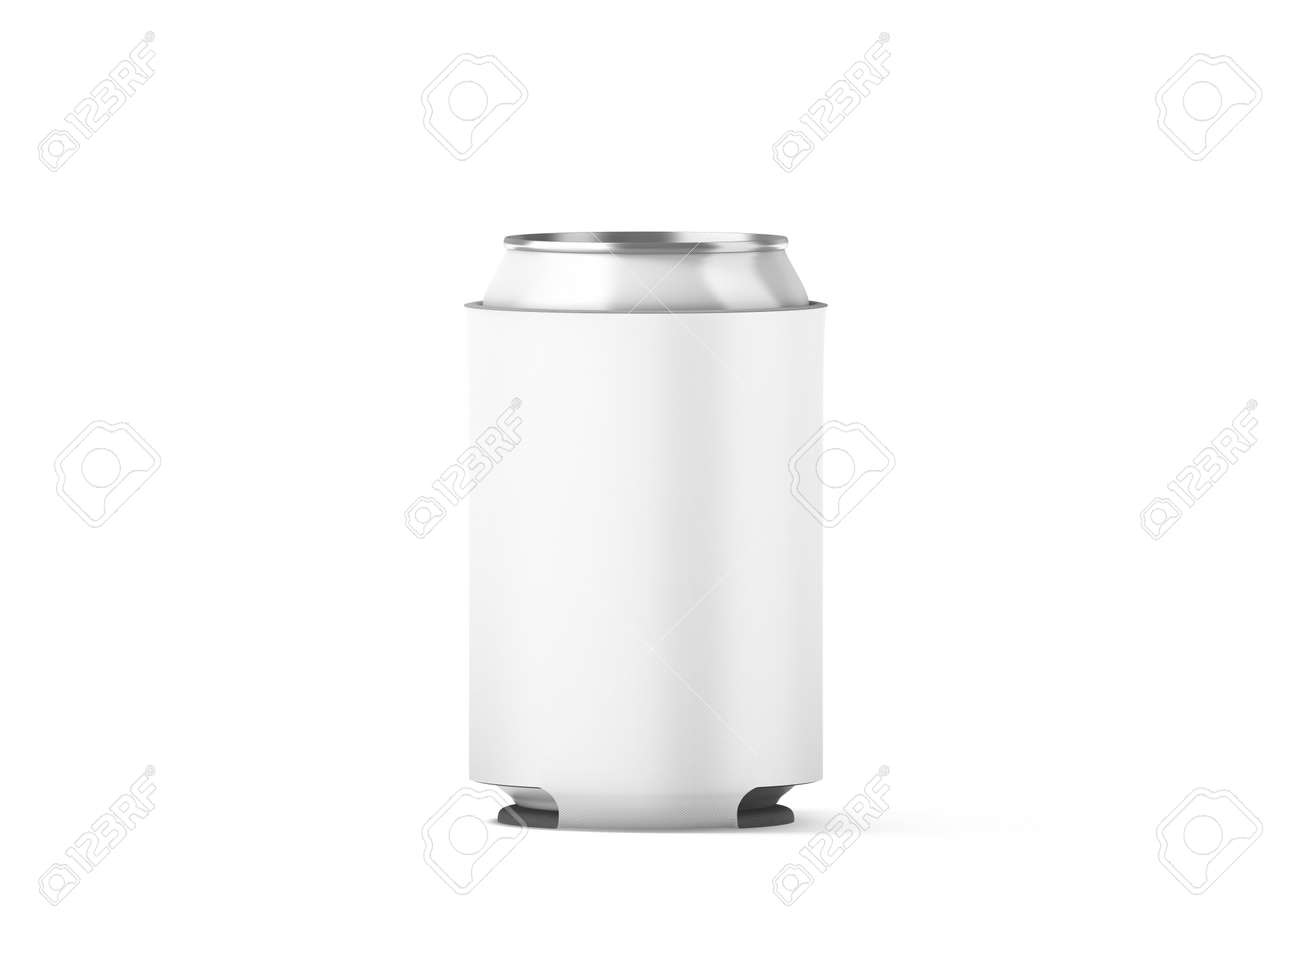 Blank White Collapsible Beer Can Koozie Mockup Isolated 3d Rendering Empty Neoprene Cooler Holder